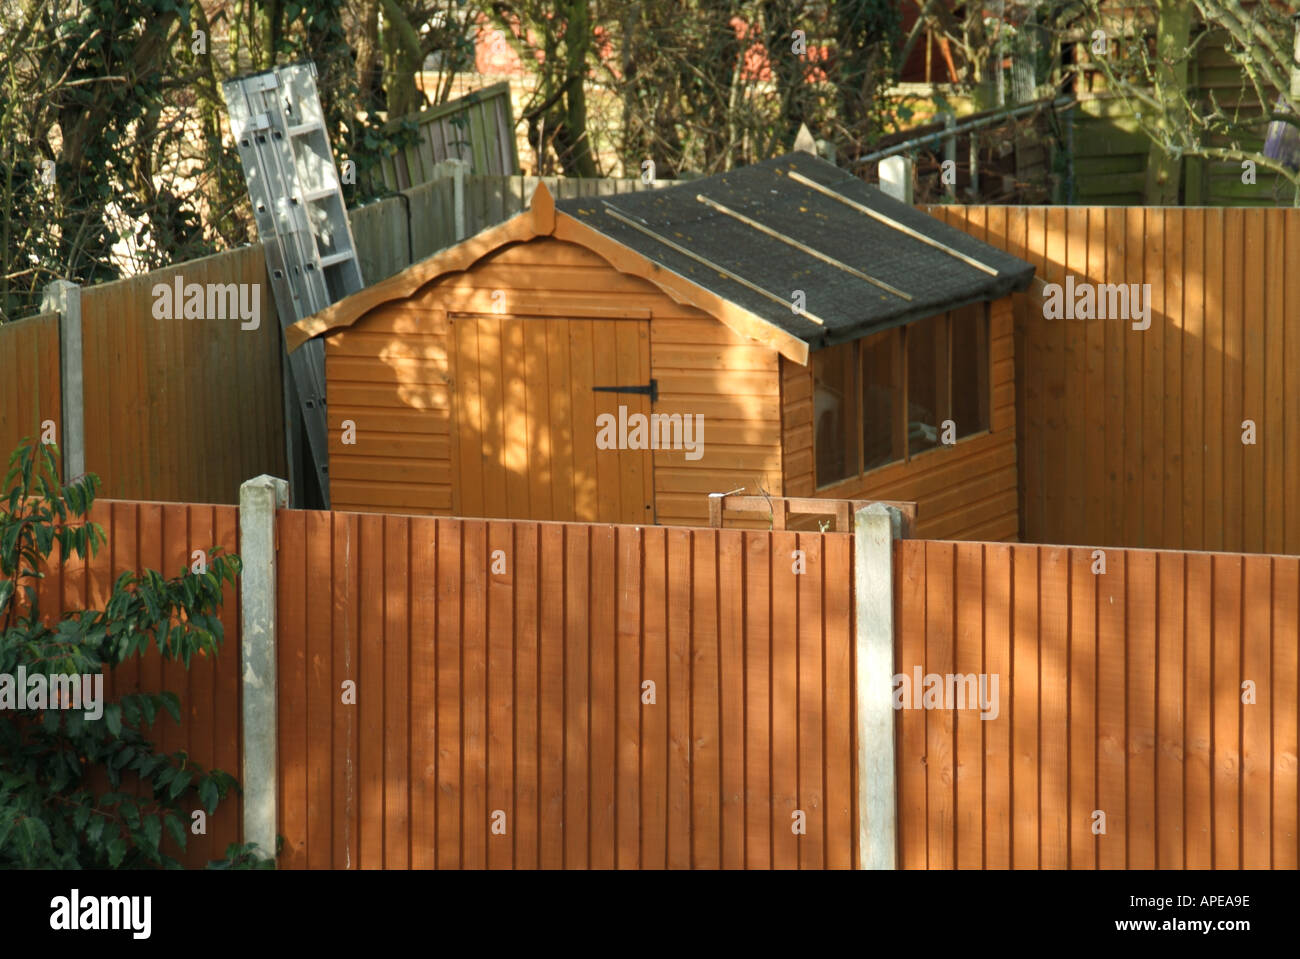 Concrete fencing post stock photos concrete fencing post stock back garden timber fence panels with concrete posts and wood garden shed with ladder stock baanklon Images